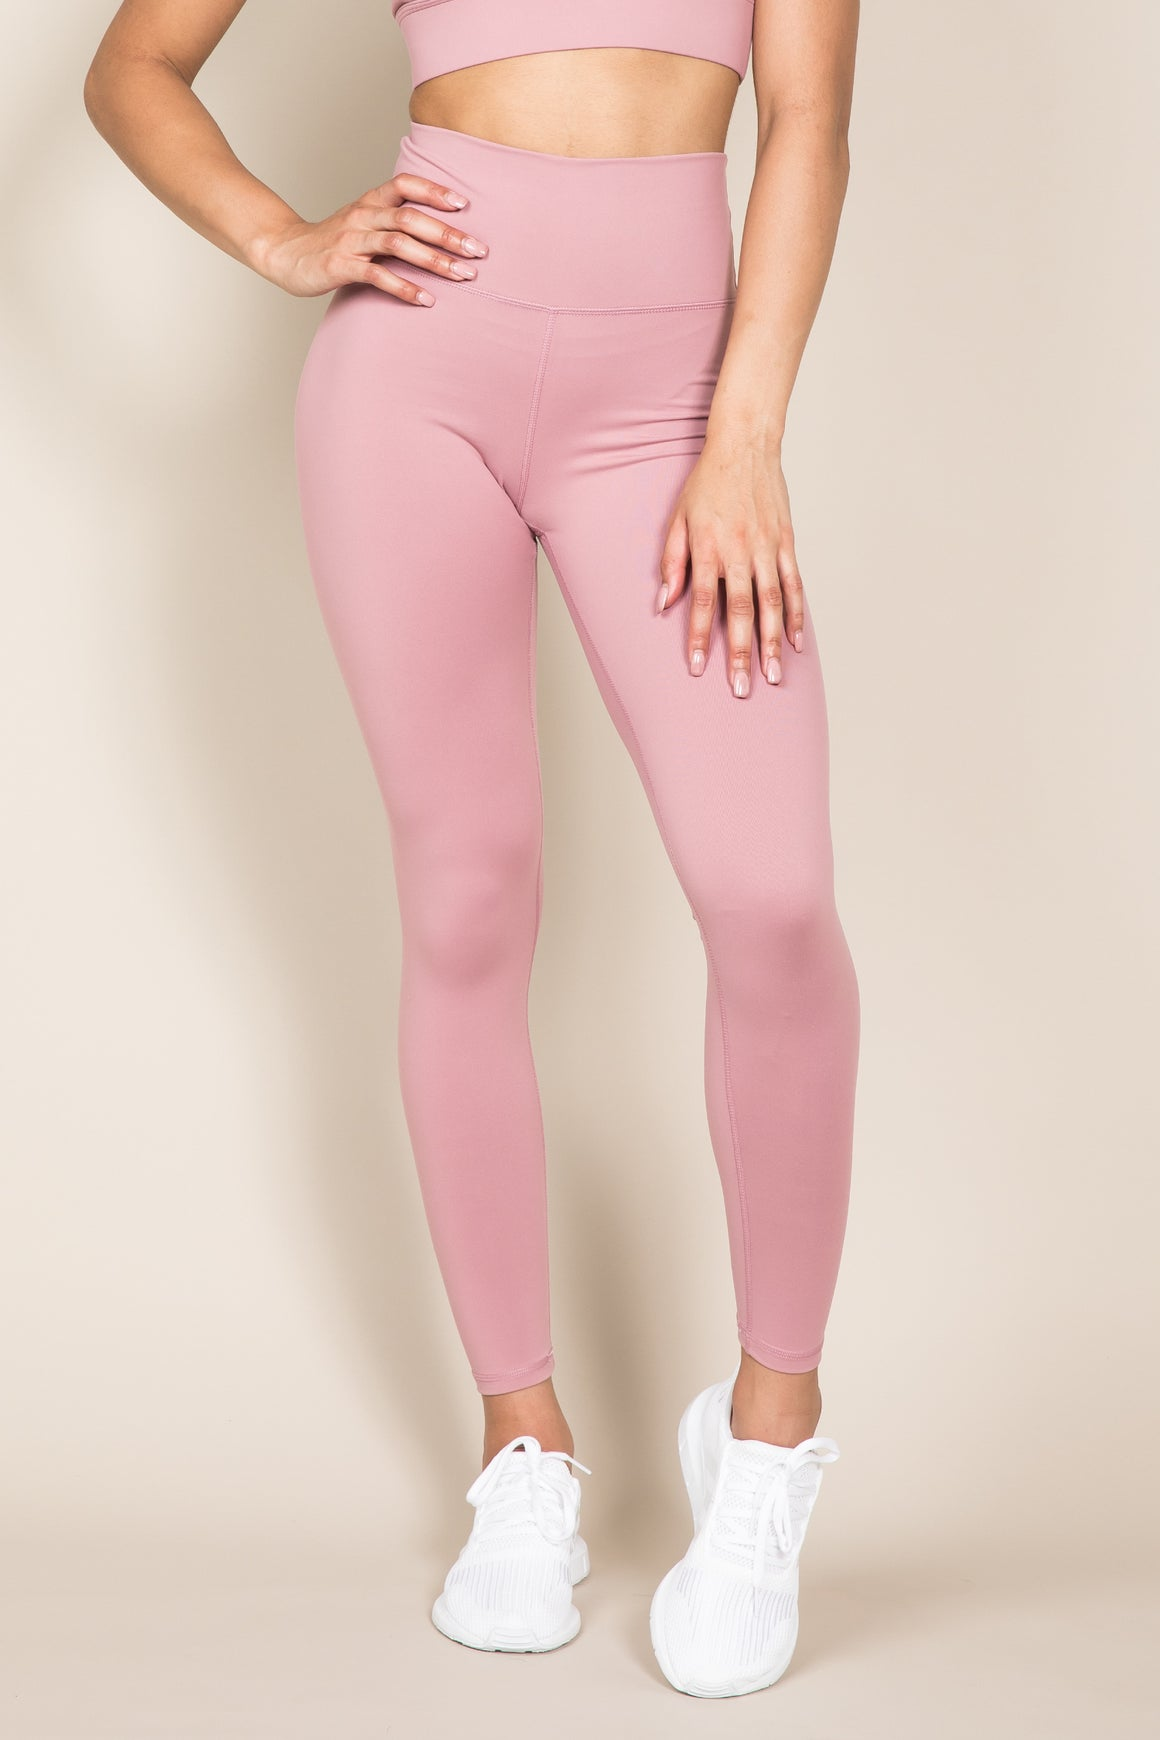 Sensation Leggings - Dusty Rose